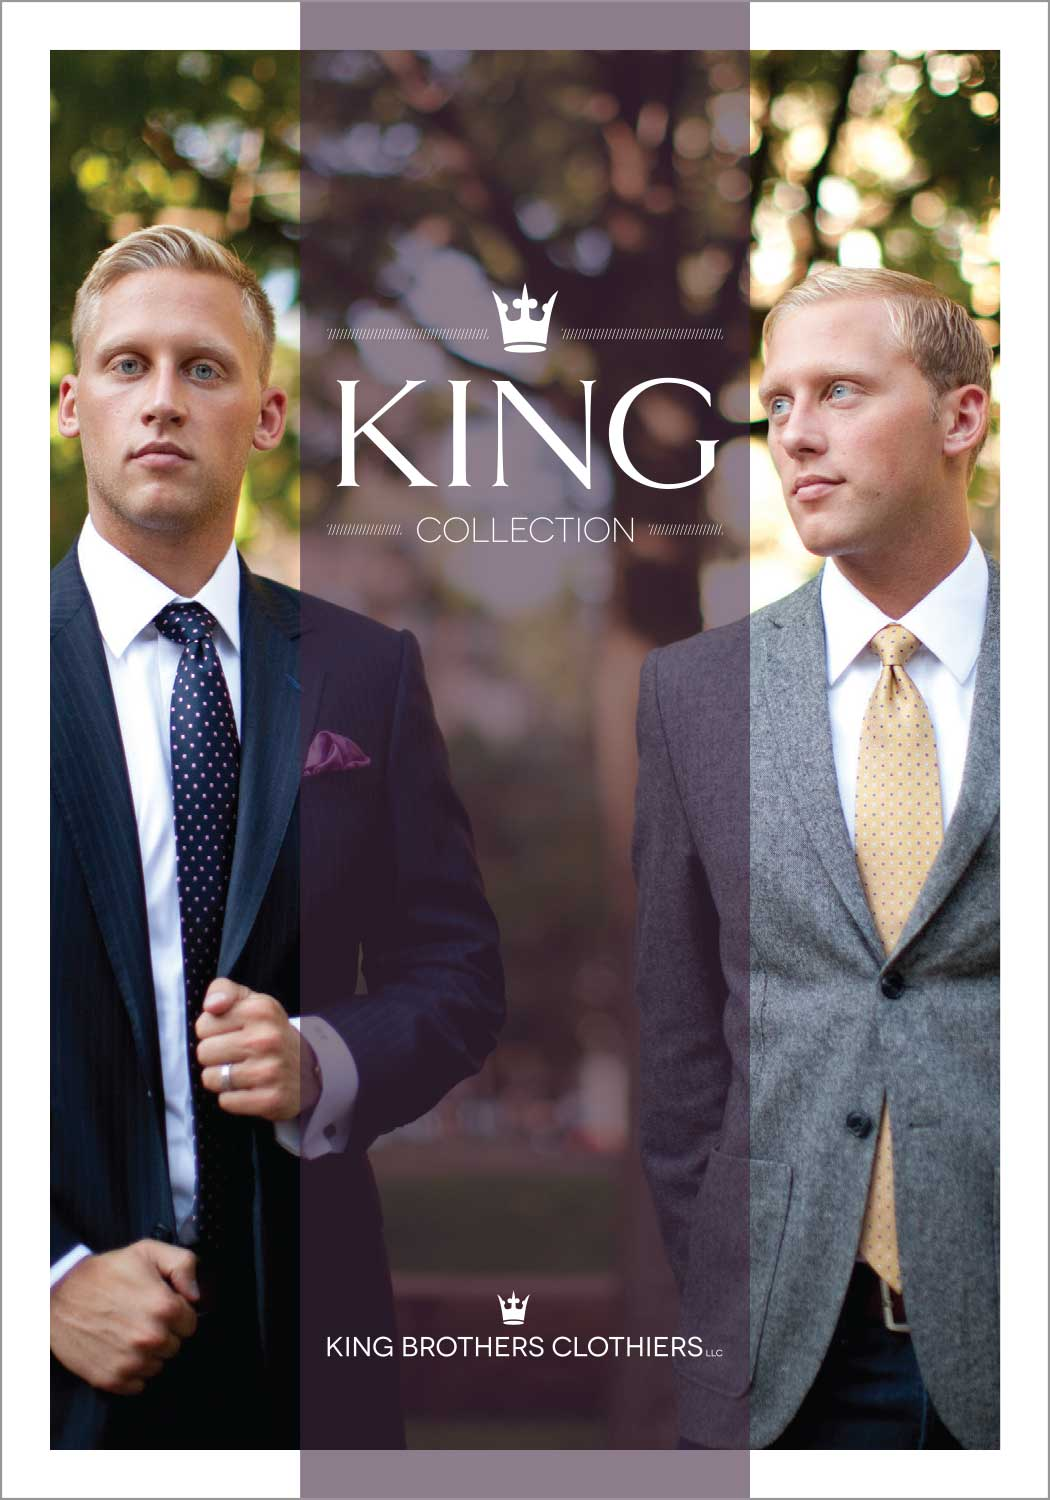 King-collection